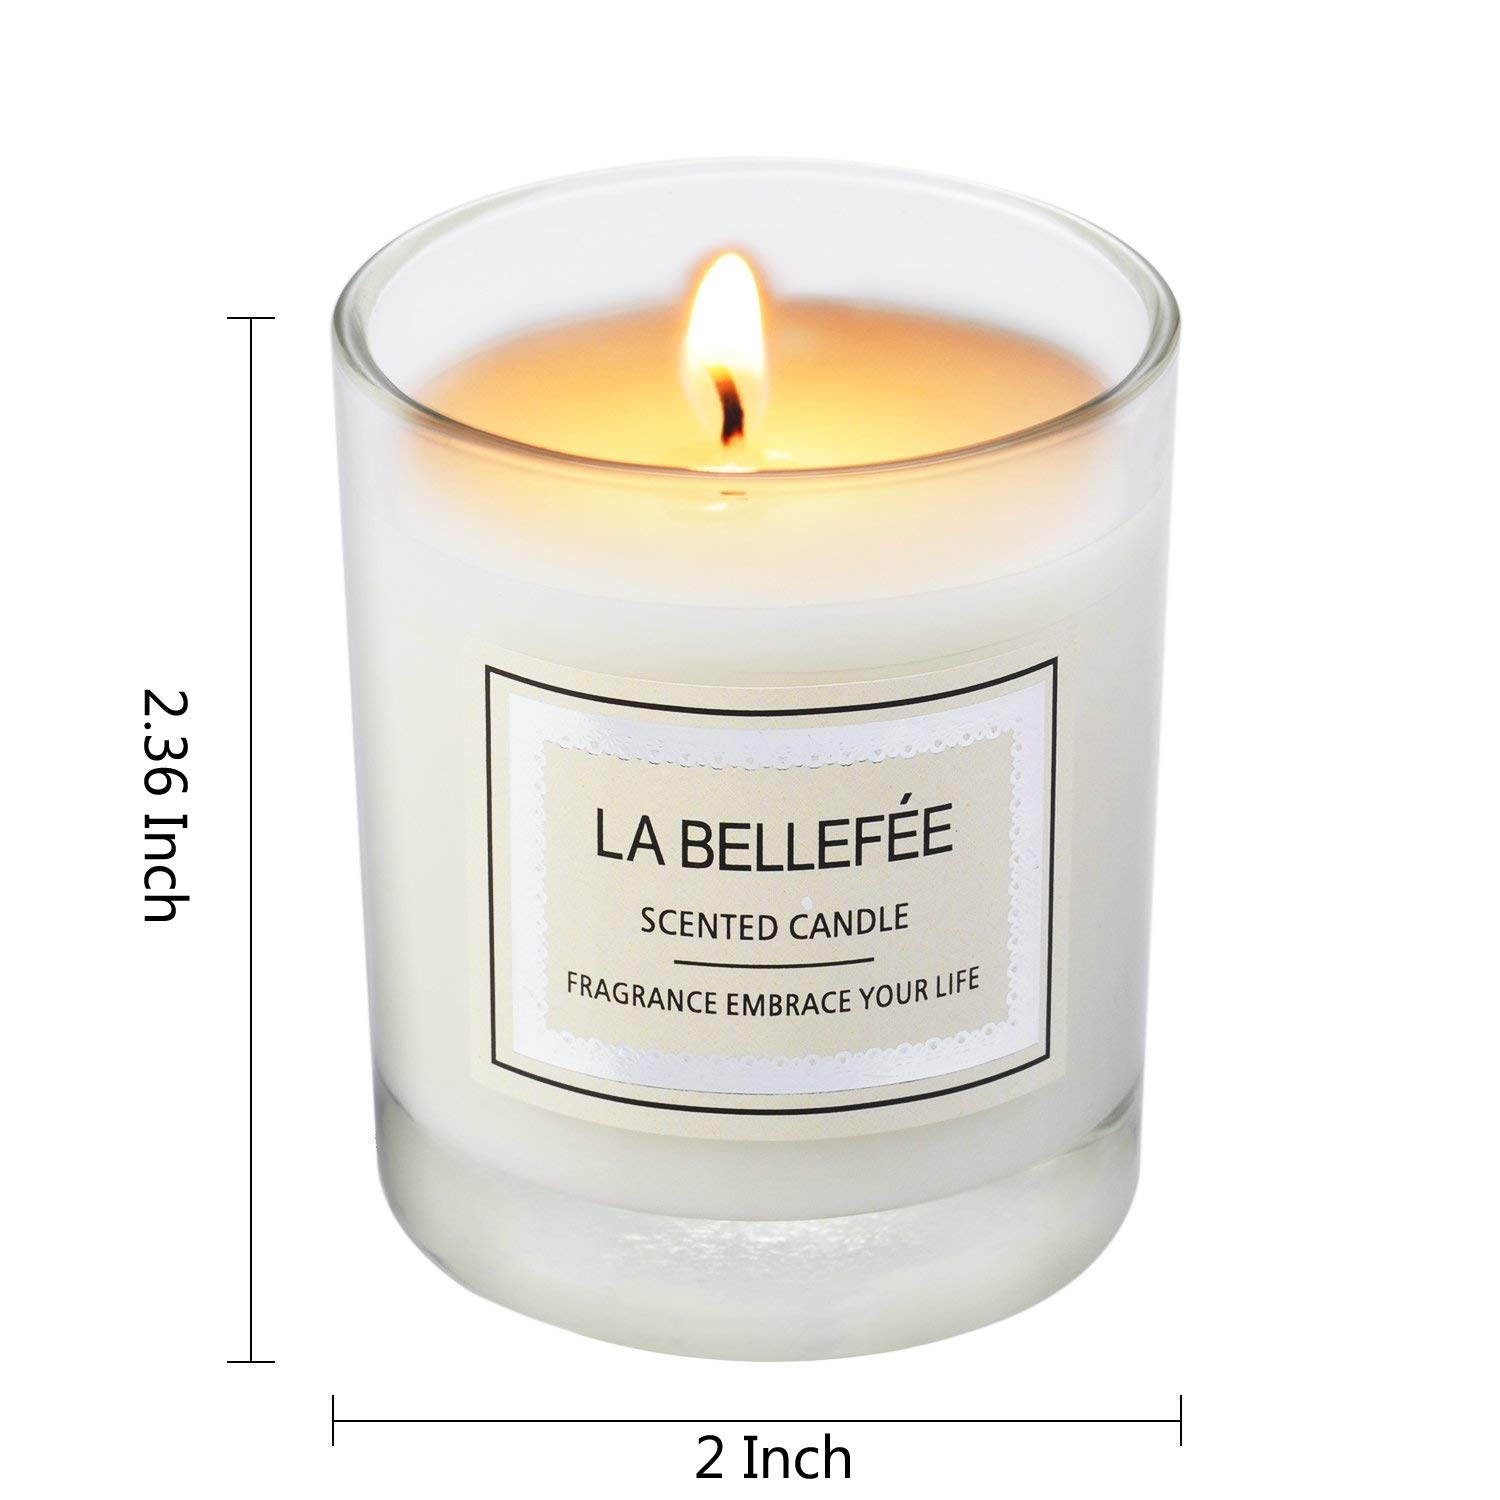 100/% Cotton Wick Votive Candle for Outdoor and Indoor LA BELLEF/ÉE Scented Natural Bluebell-3 Pack Gift Set LA BELLEFÉE LA BELLEFÉE0002 Aromatherapy Soy Wax Blood Orange Fragrances of Pear /& Freesia